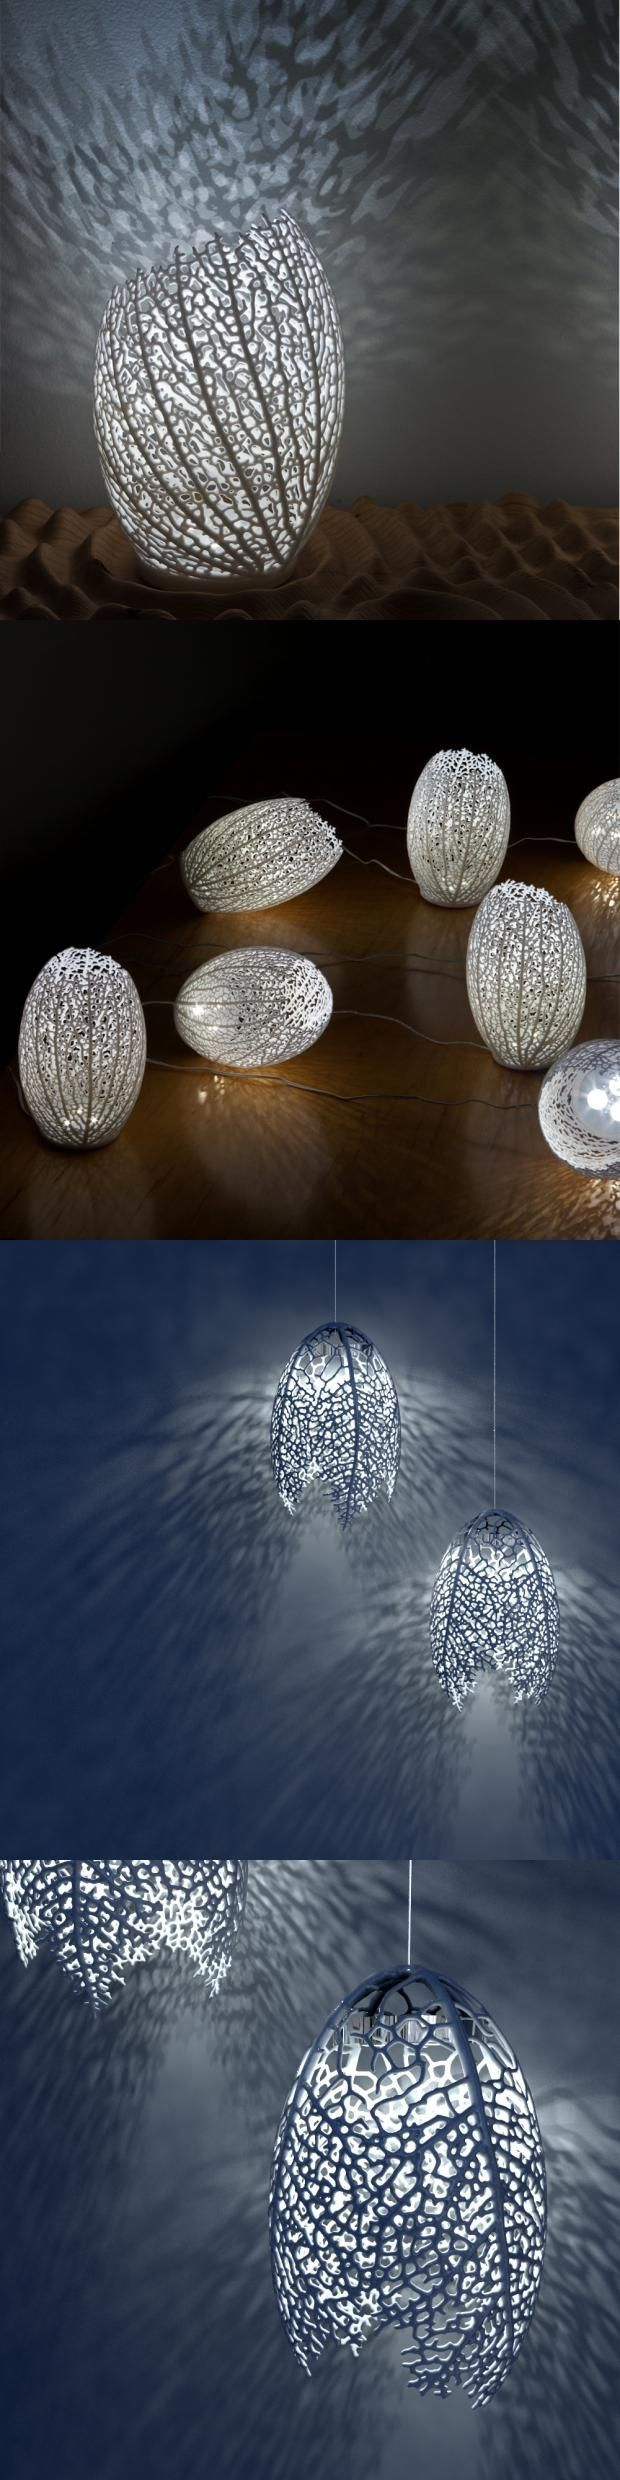 The Hyphae lamp is a series of organic table lamps based on how veins form in le... - http://centophobe.com/the-hyphae-lamp-is-a-series-of-organic-table-lamps-based-on-how-veins-form-in-le/